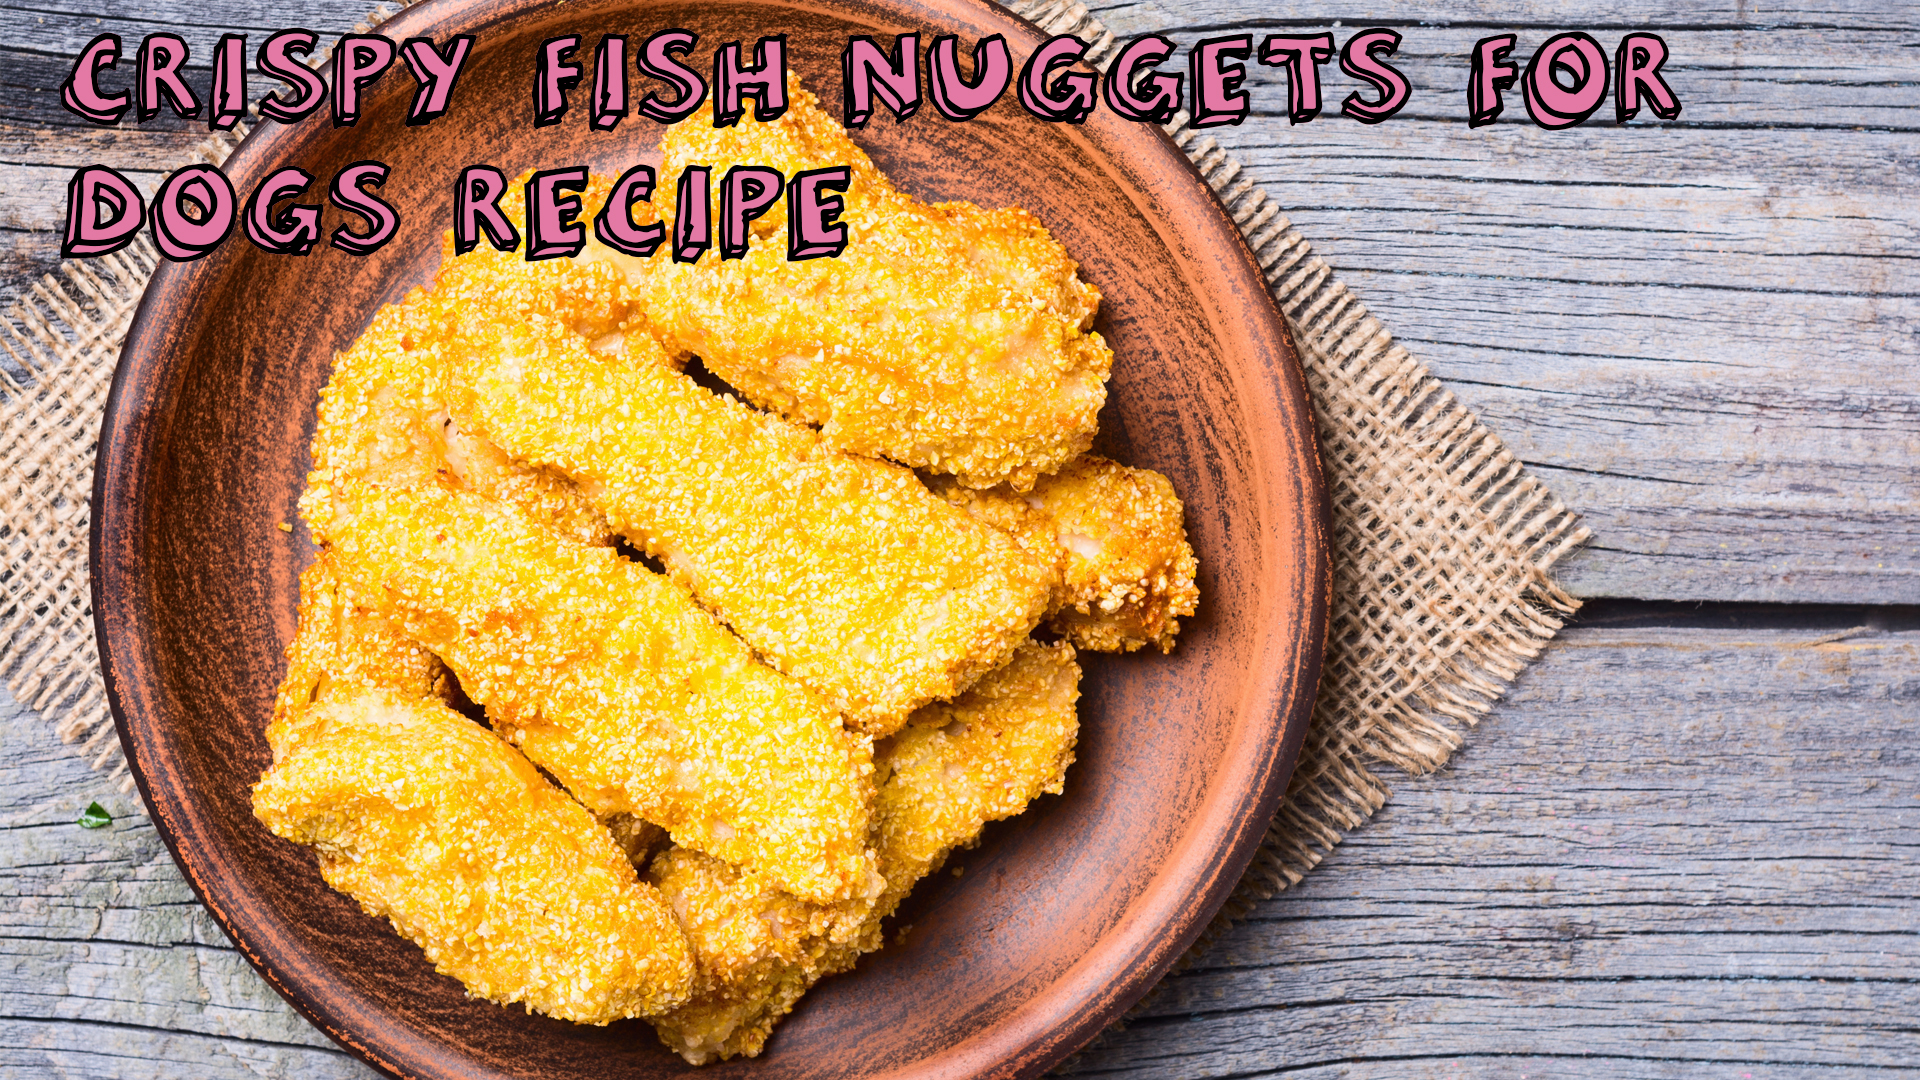 Crispy Fish Nuggets for Dogs Recipe